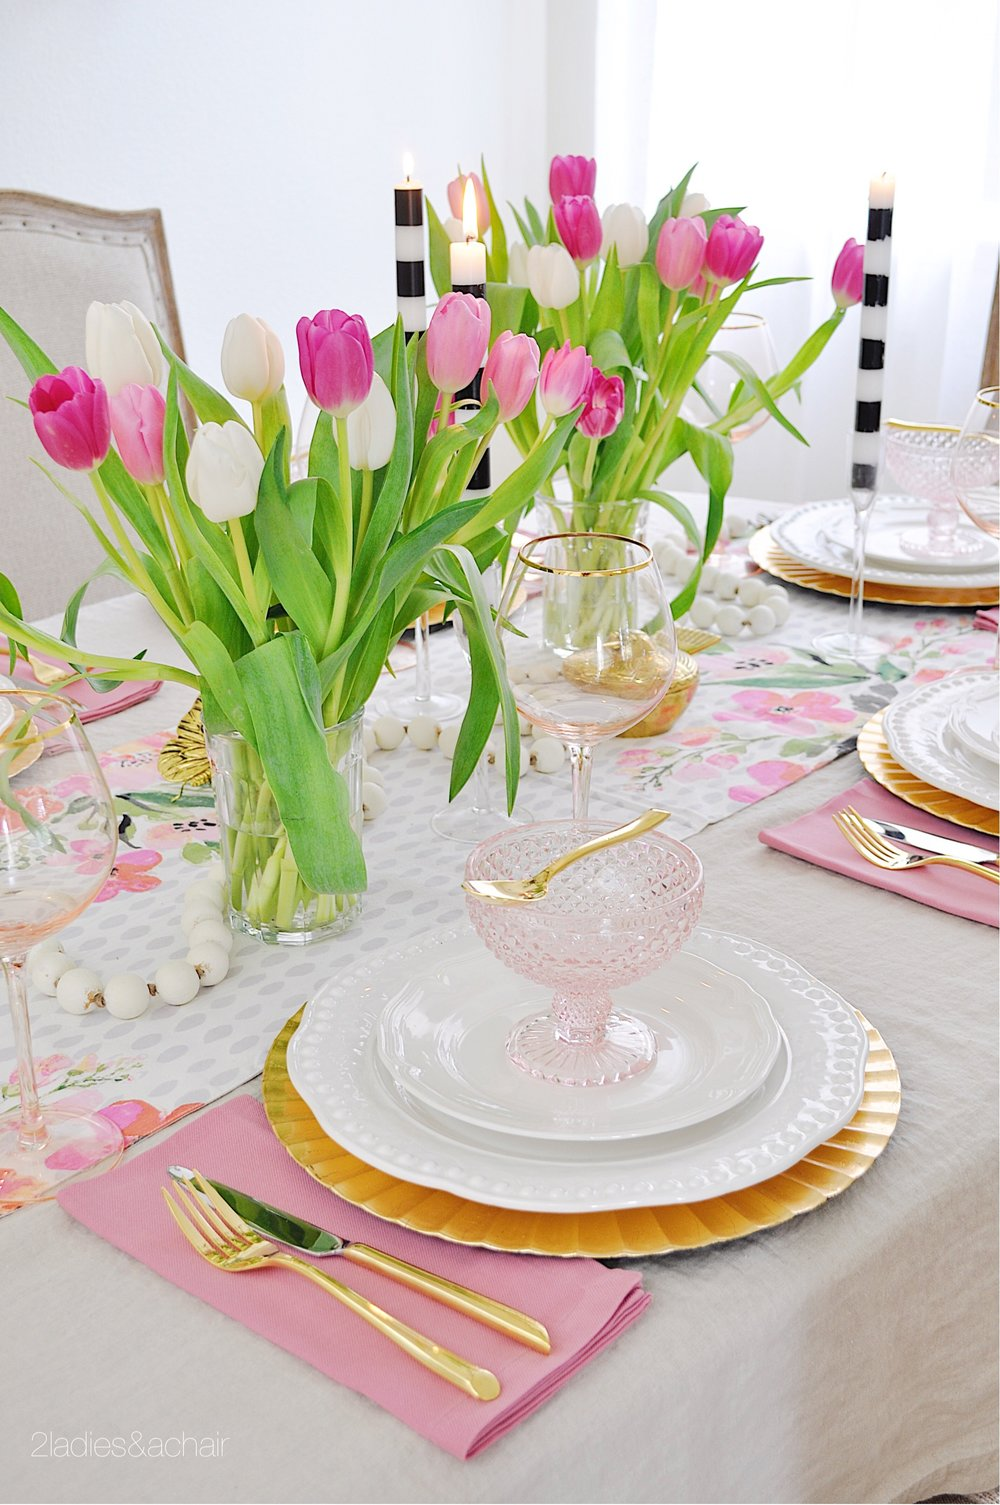 spring tablescape decor IMG_1941.JPG